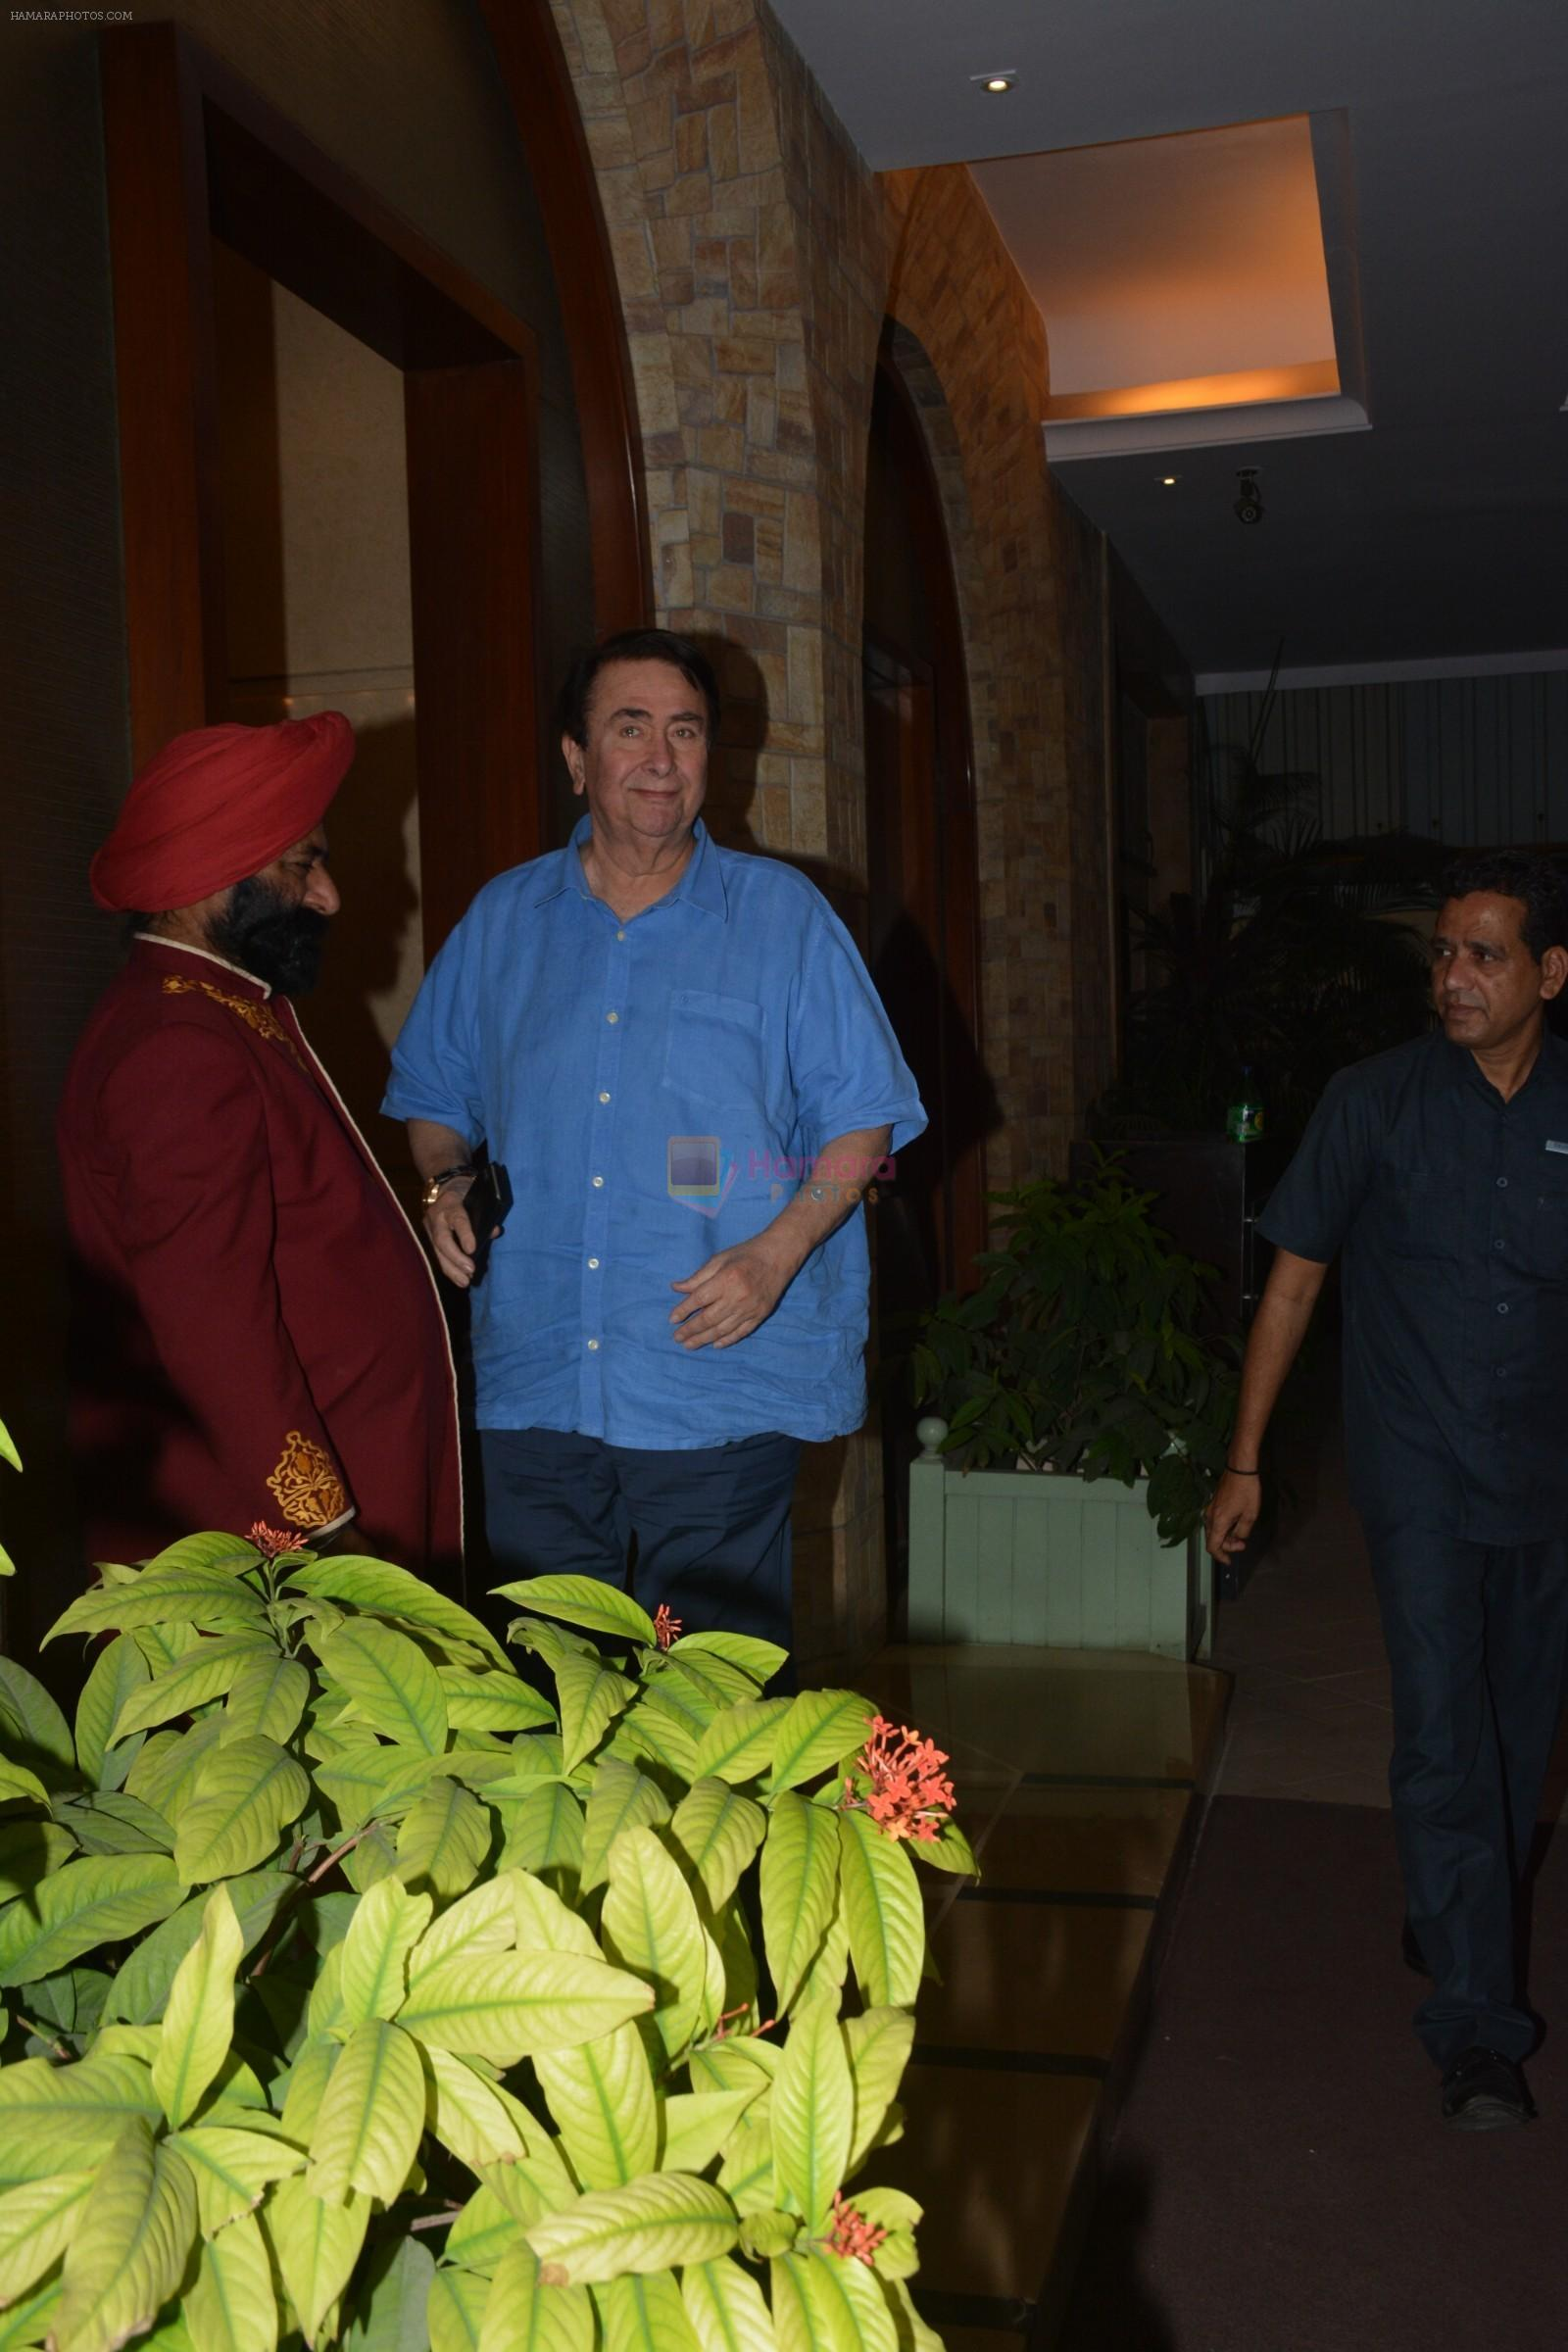 Randhir Kapoor at Taimur's birthday party in bandra on 7th Dec 2018